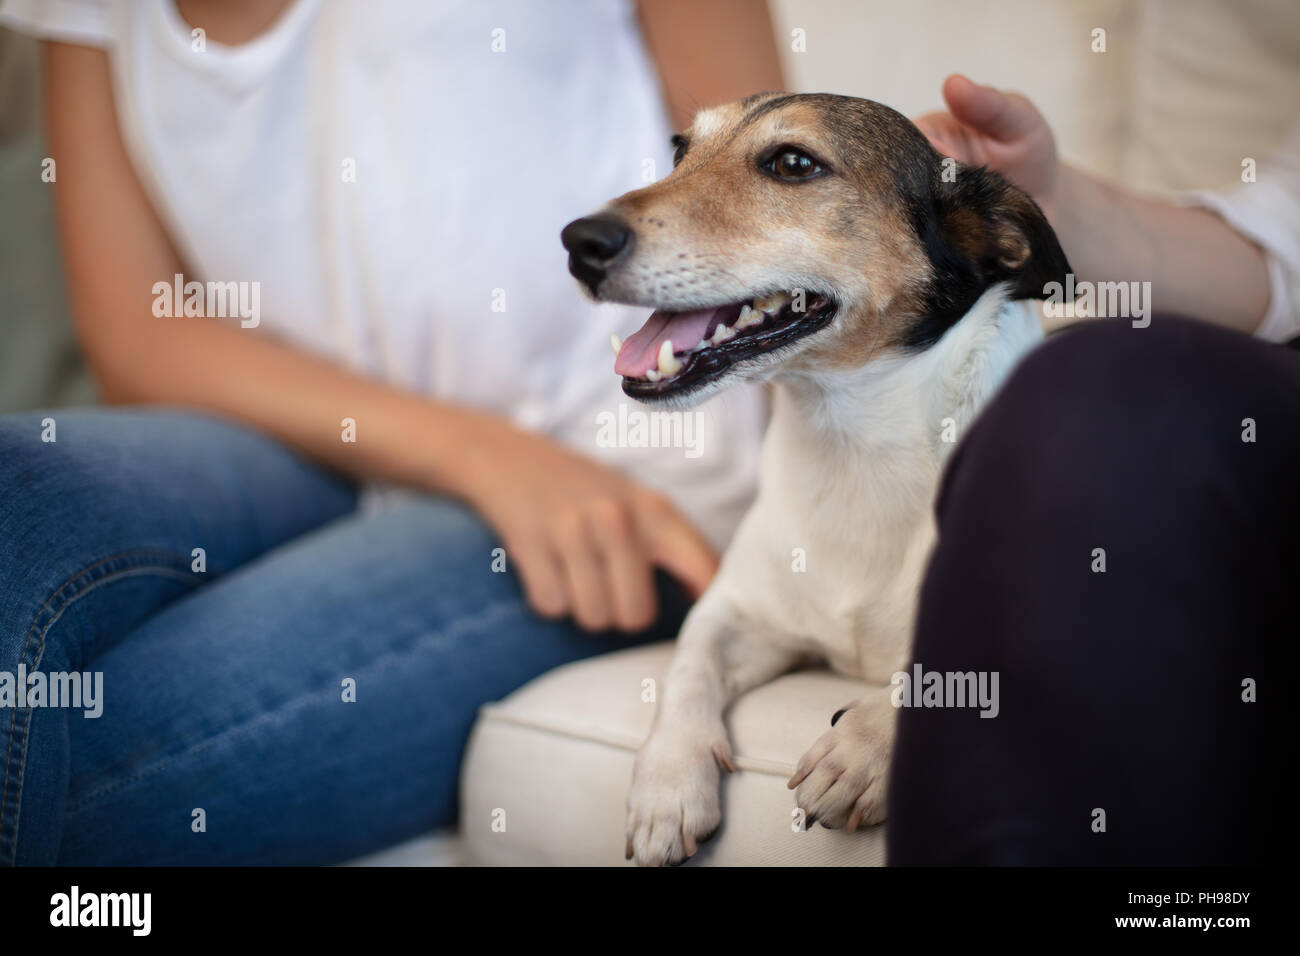 Spoilt little dog enjoying a caress on the sofa as it lies between a young couple with the man stroking it lovingly on the head in a close up view - Stock Image